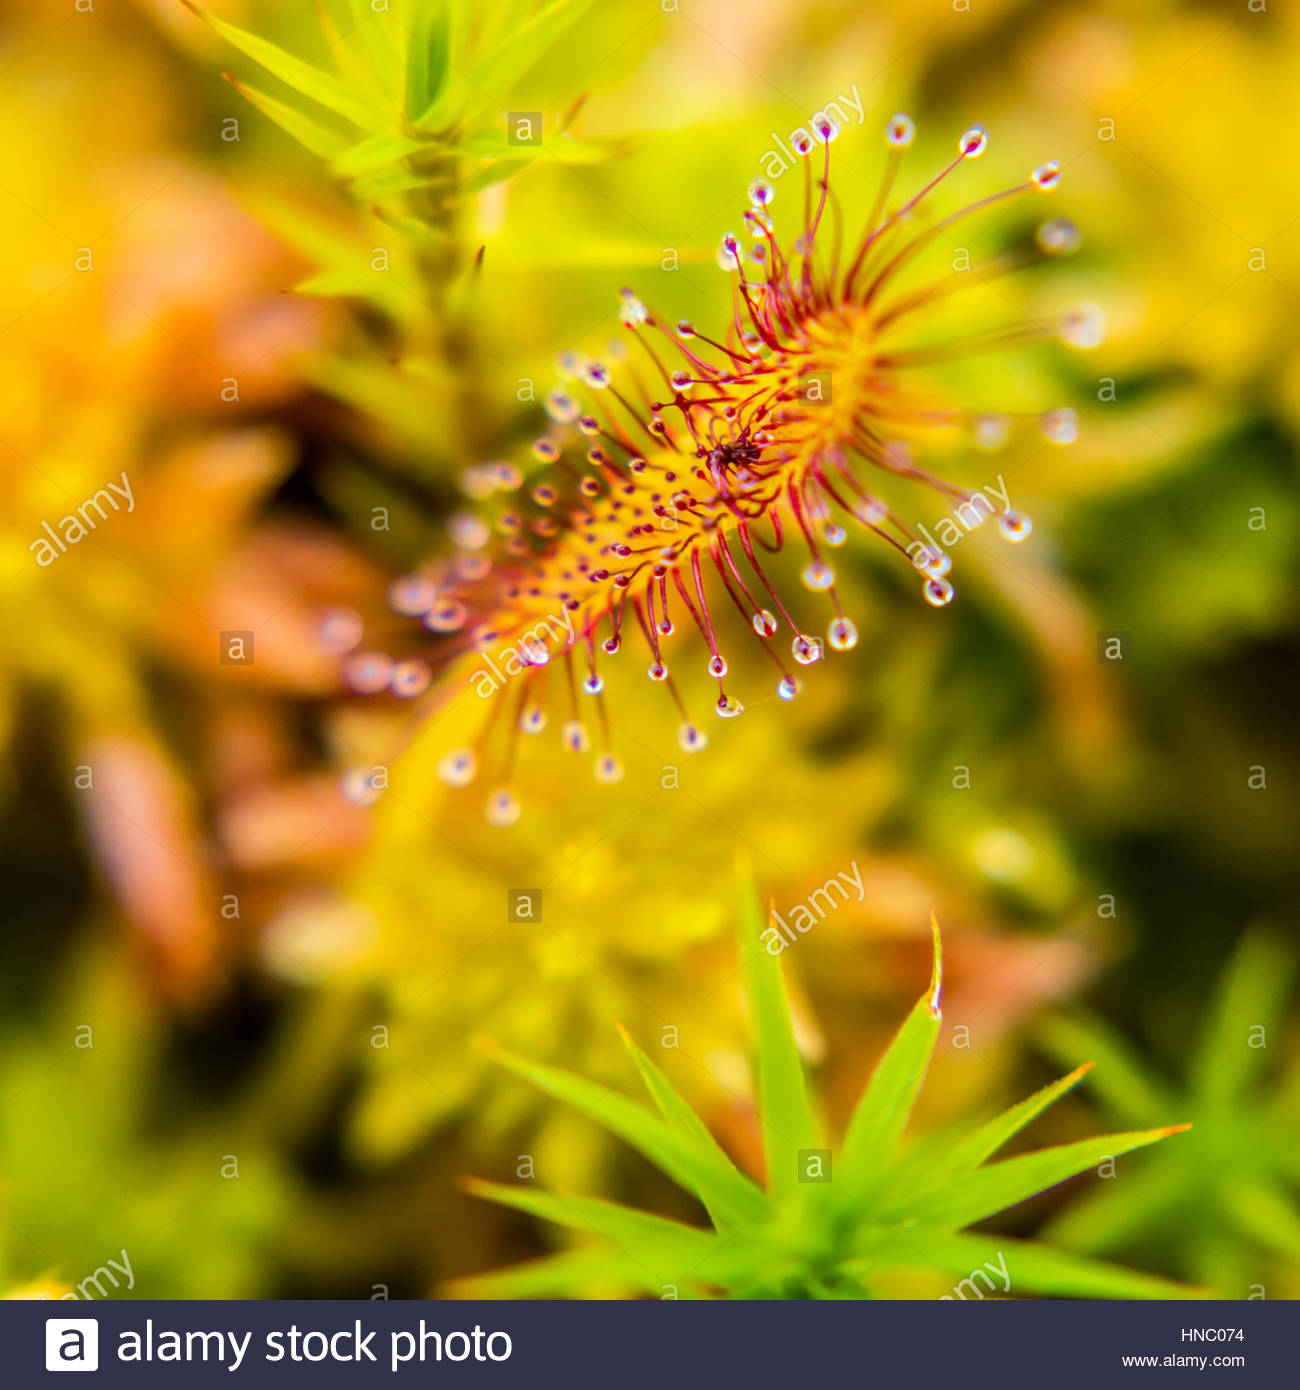 The leaf of a sticky sundew plant, Drosera capensis, at Glasgow Botanical Garden. - Stock Image